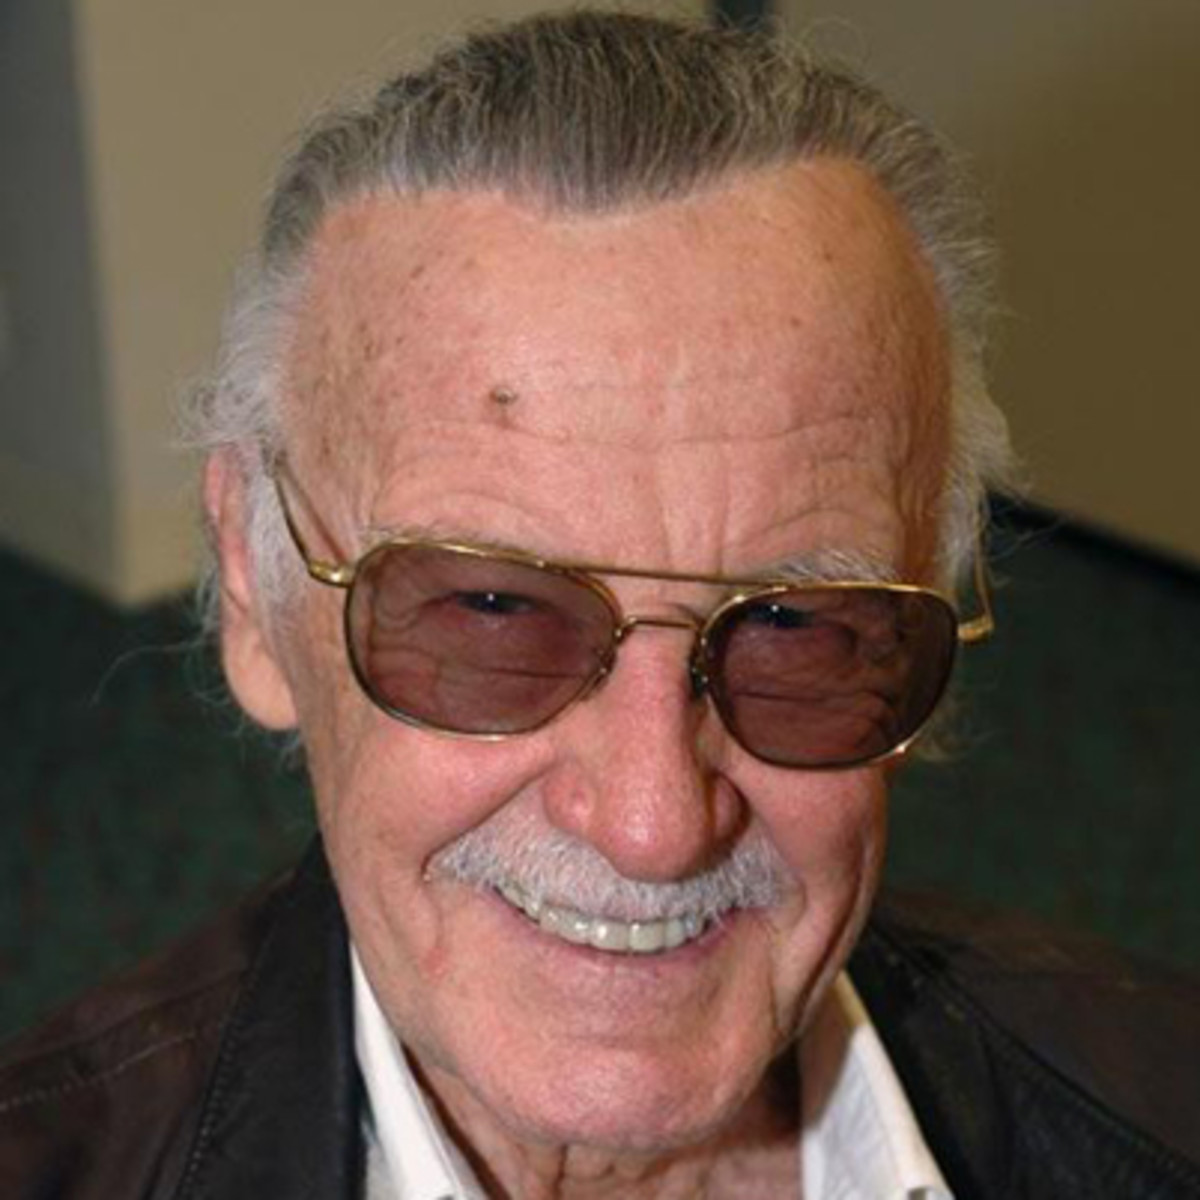 Famous People Named Ava for stan lee - television producer, producer, author, editor